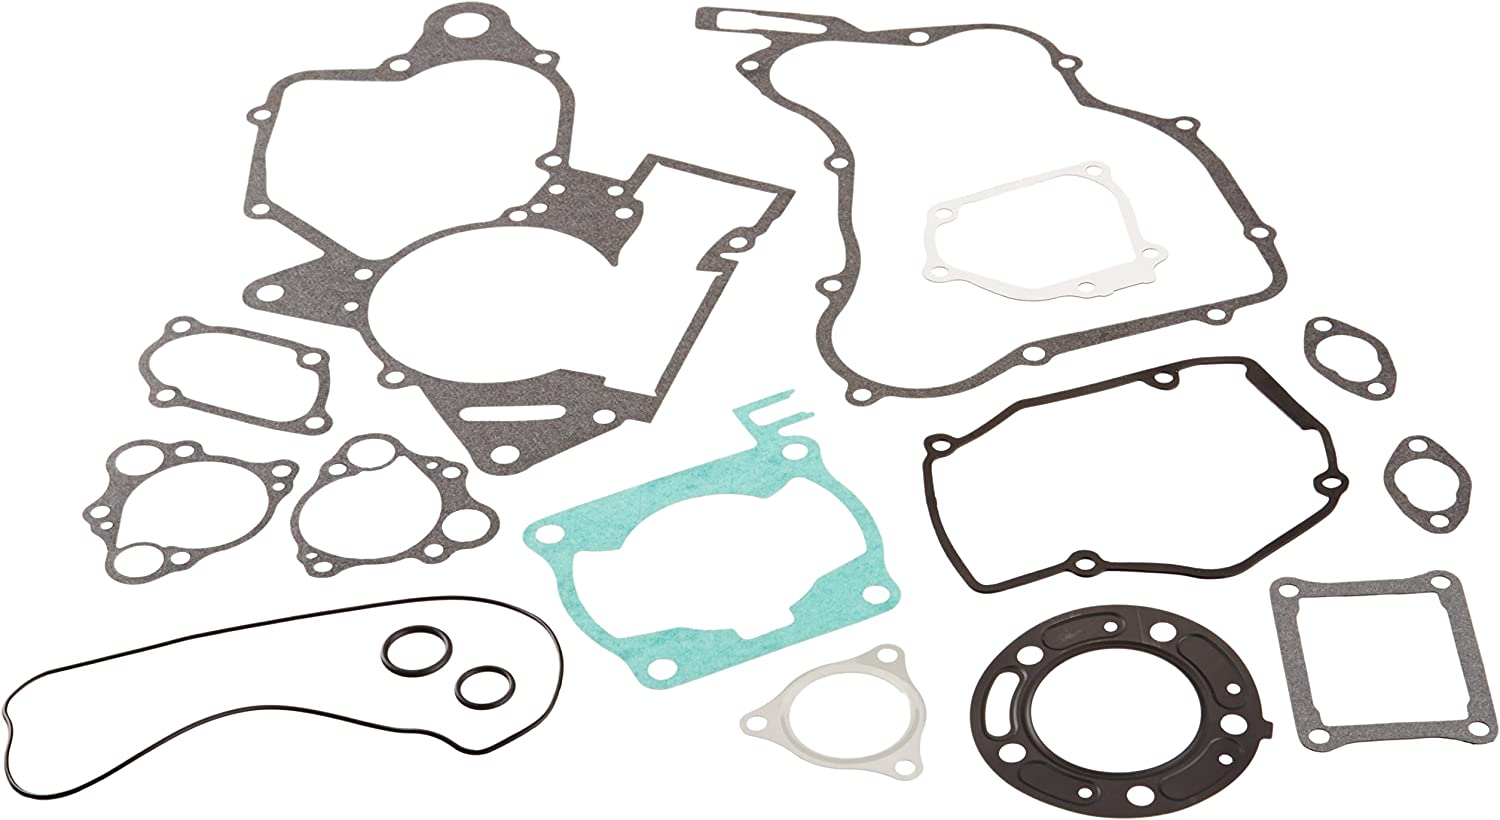 90-97 860VG808235 New Vertex Complete Gasket Set W//O Seals Compatible with//Replacement for Honda CR 125 R